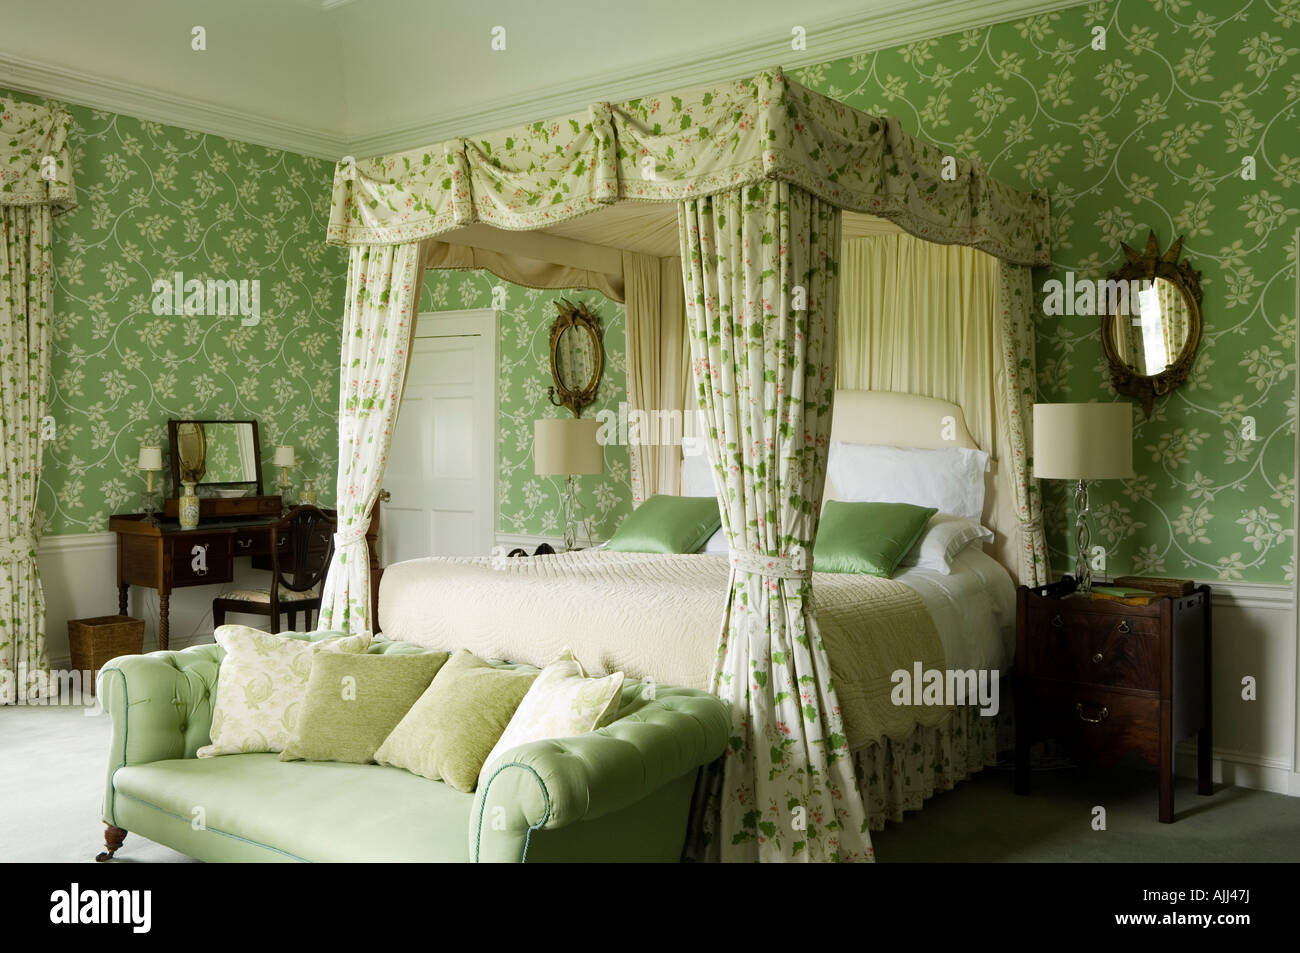 castle sofa stockfotos castle sofa bilder alamy. Black Bedroom Furniture Sets. Home Design Ideas